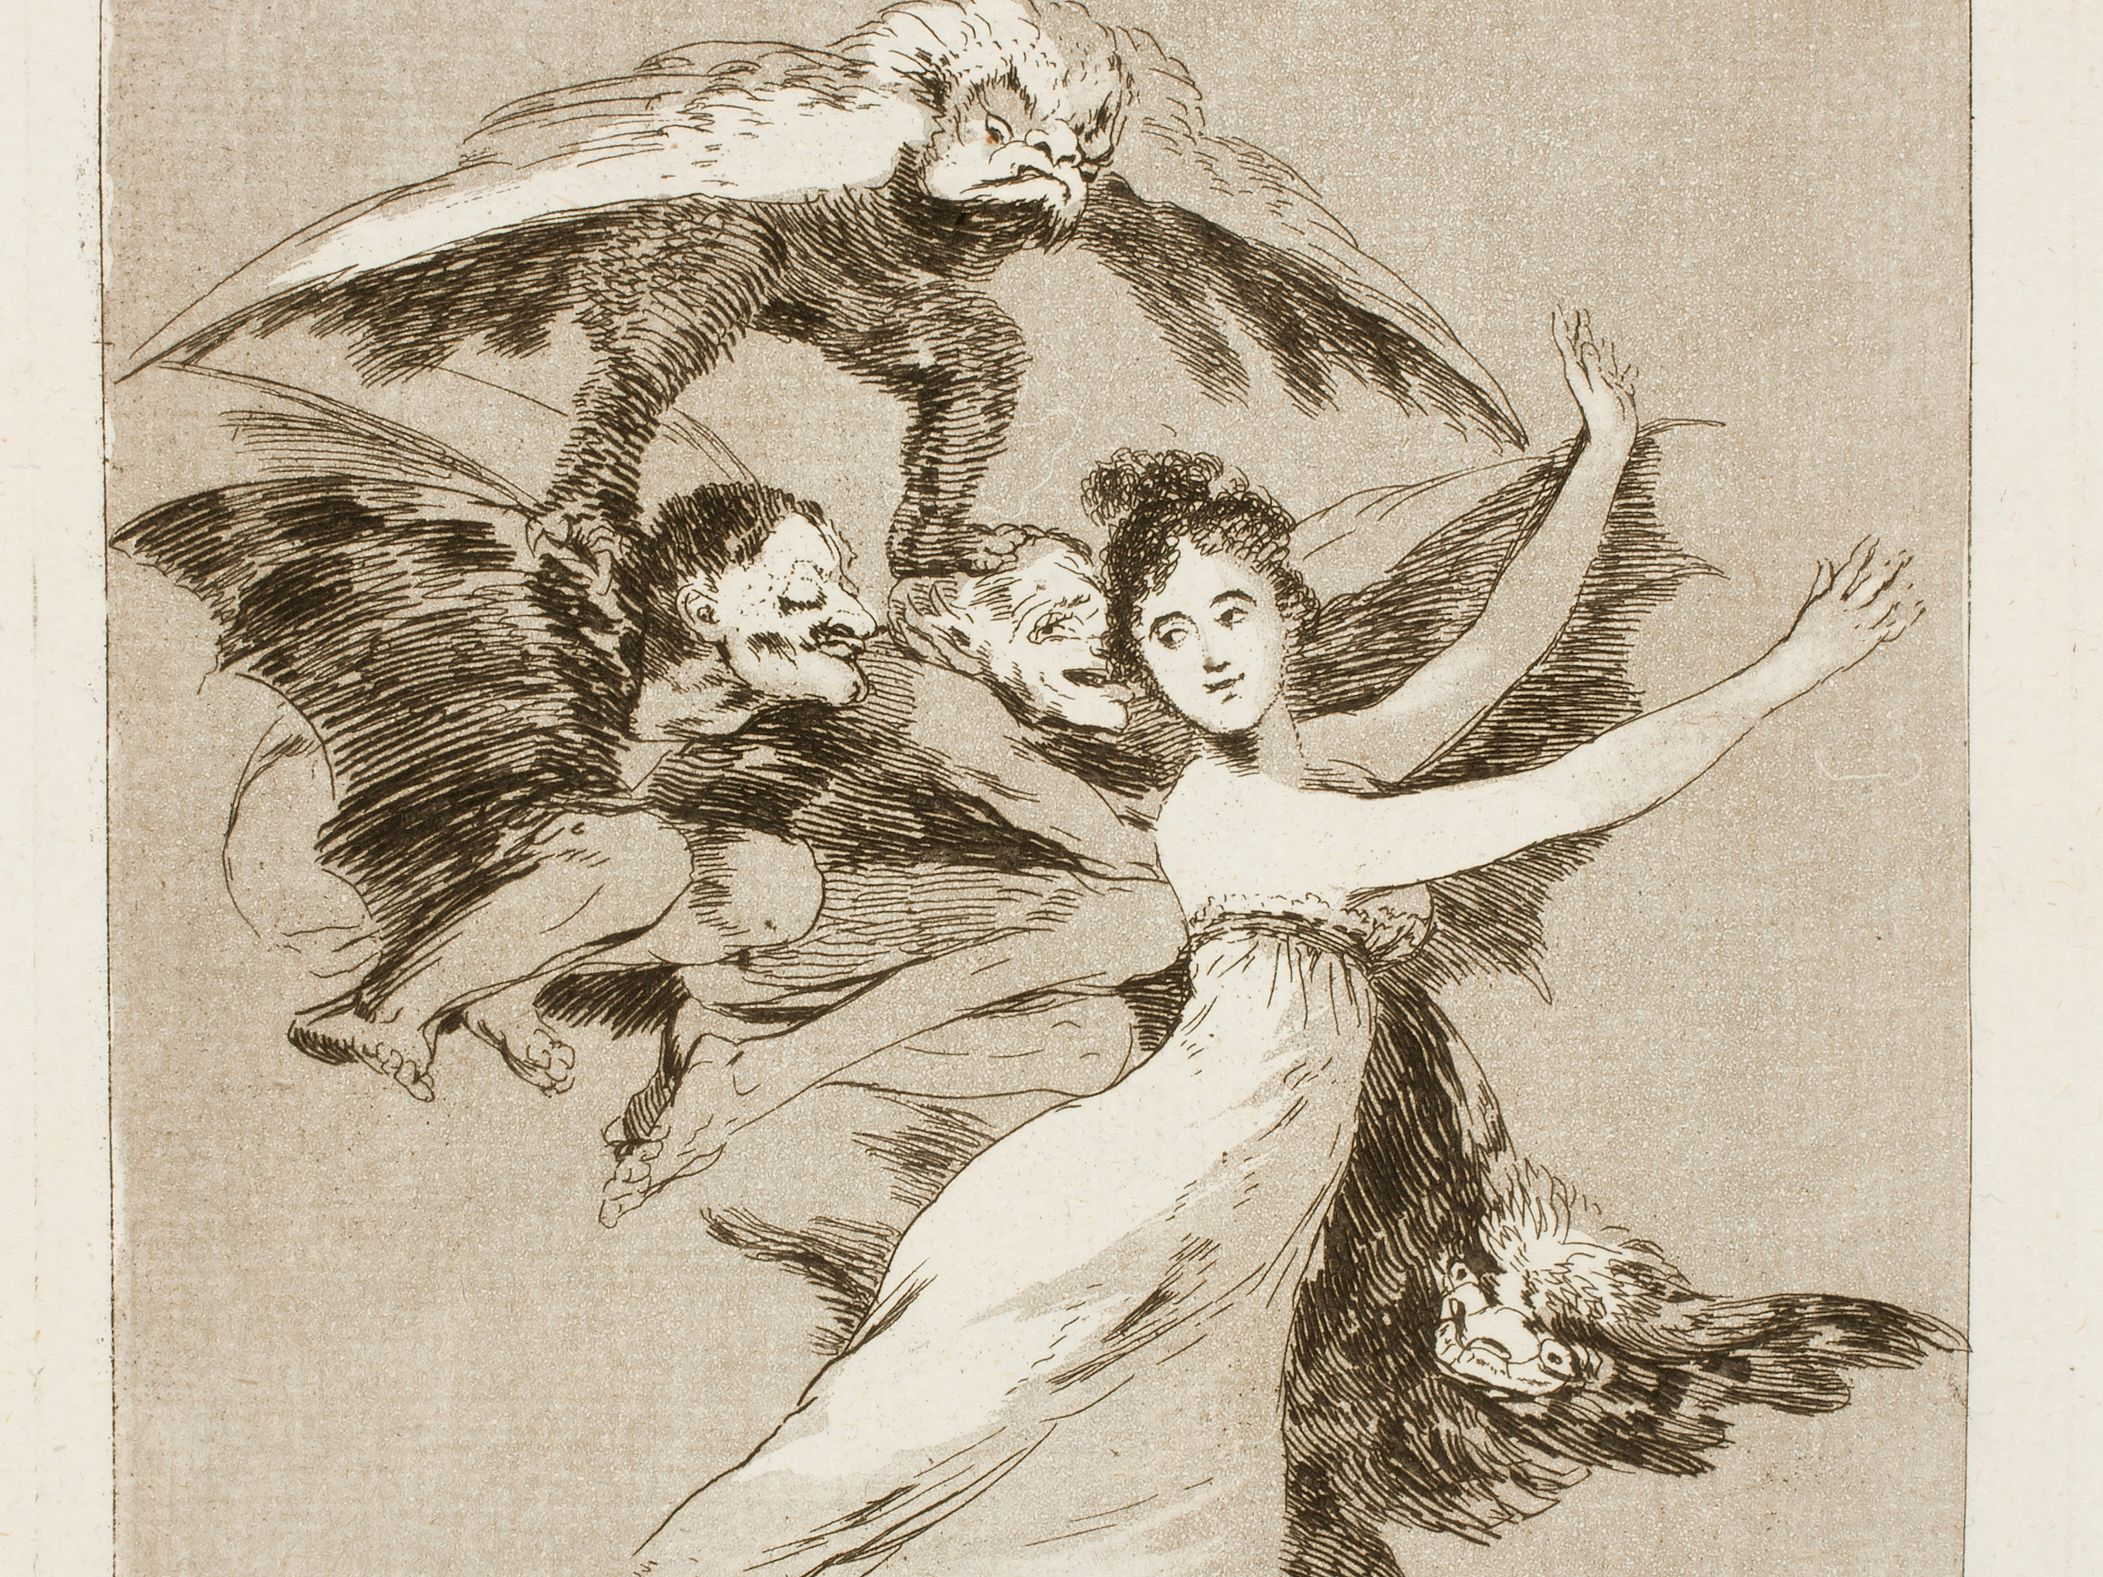 Francisco de Goya, Los Caprichos 72, No te escaparas. Wikimedia commons